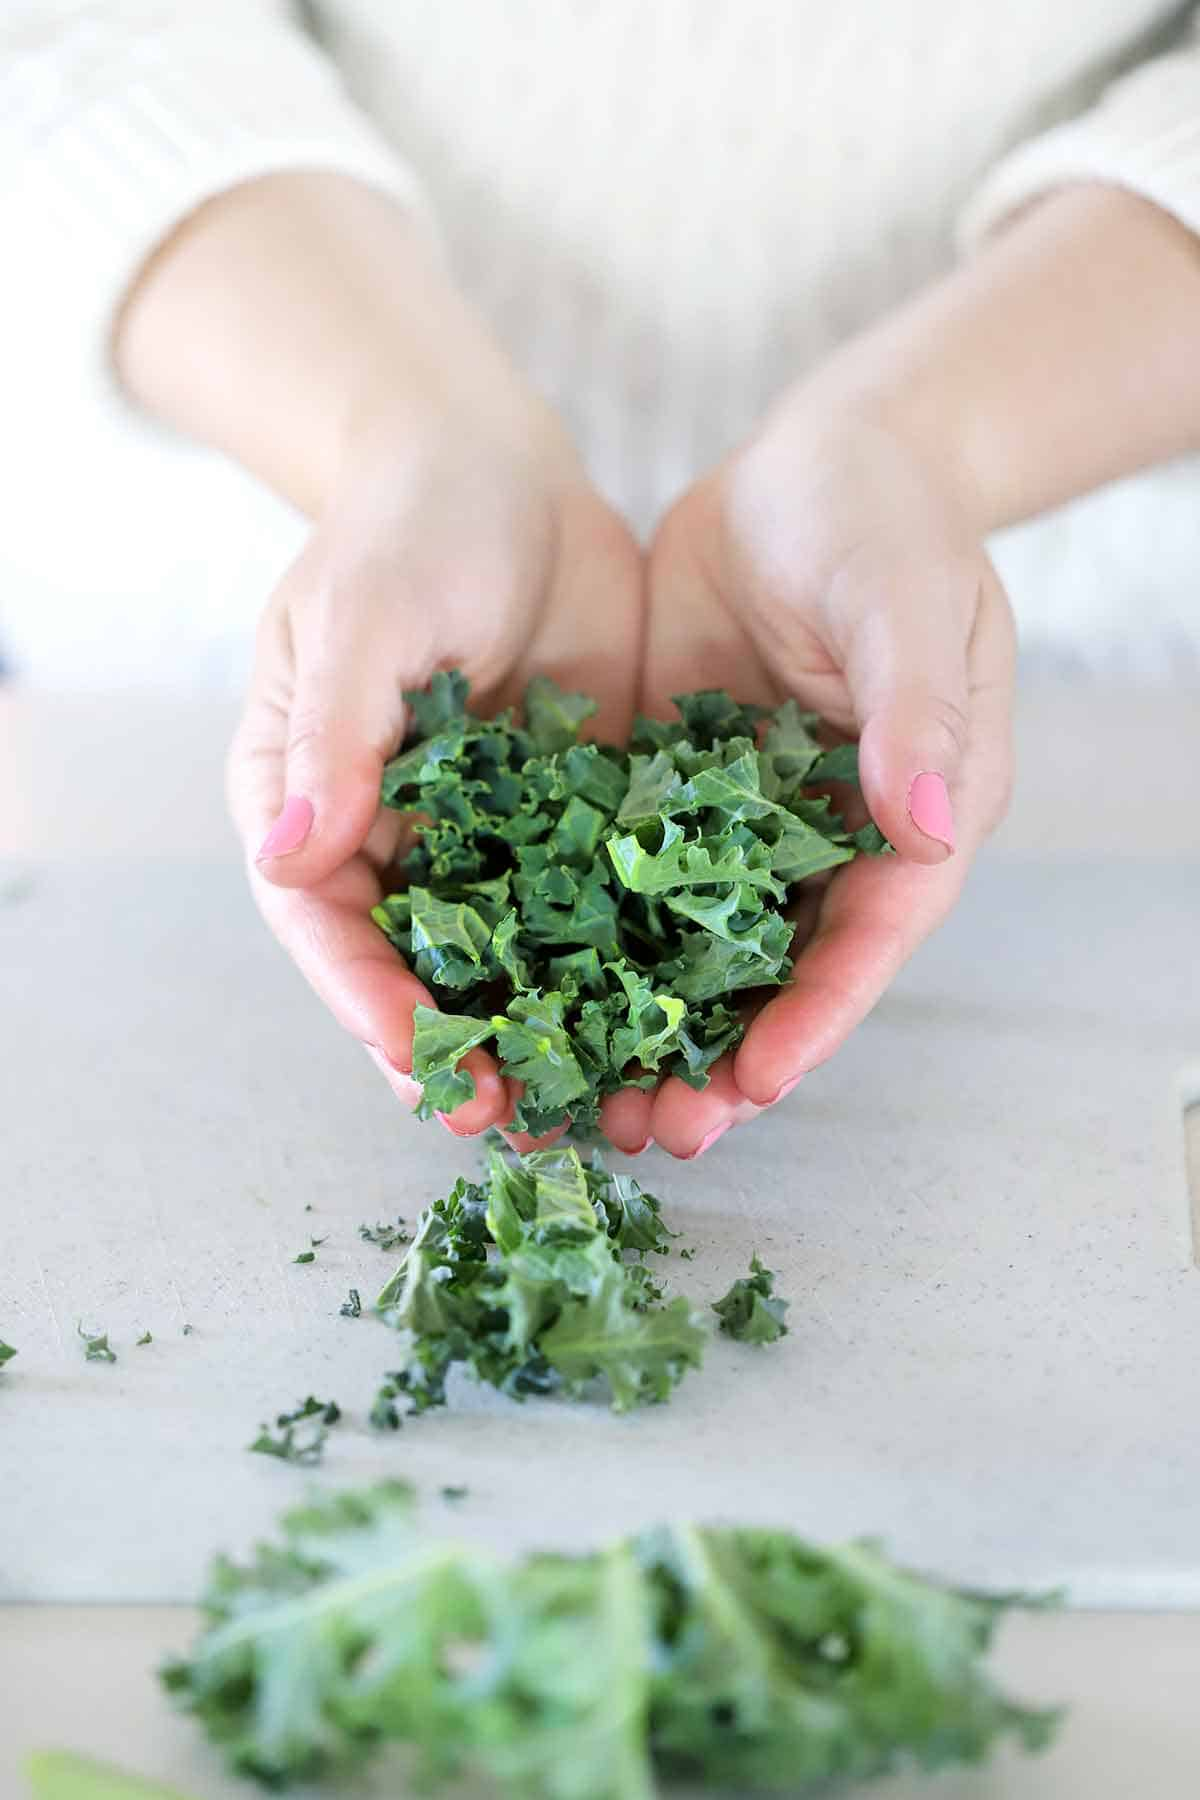 Hands holding chopped kale.